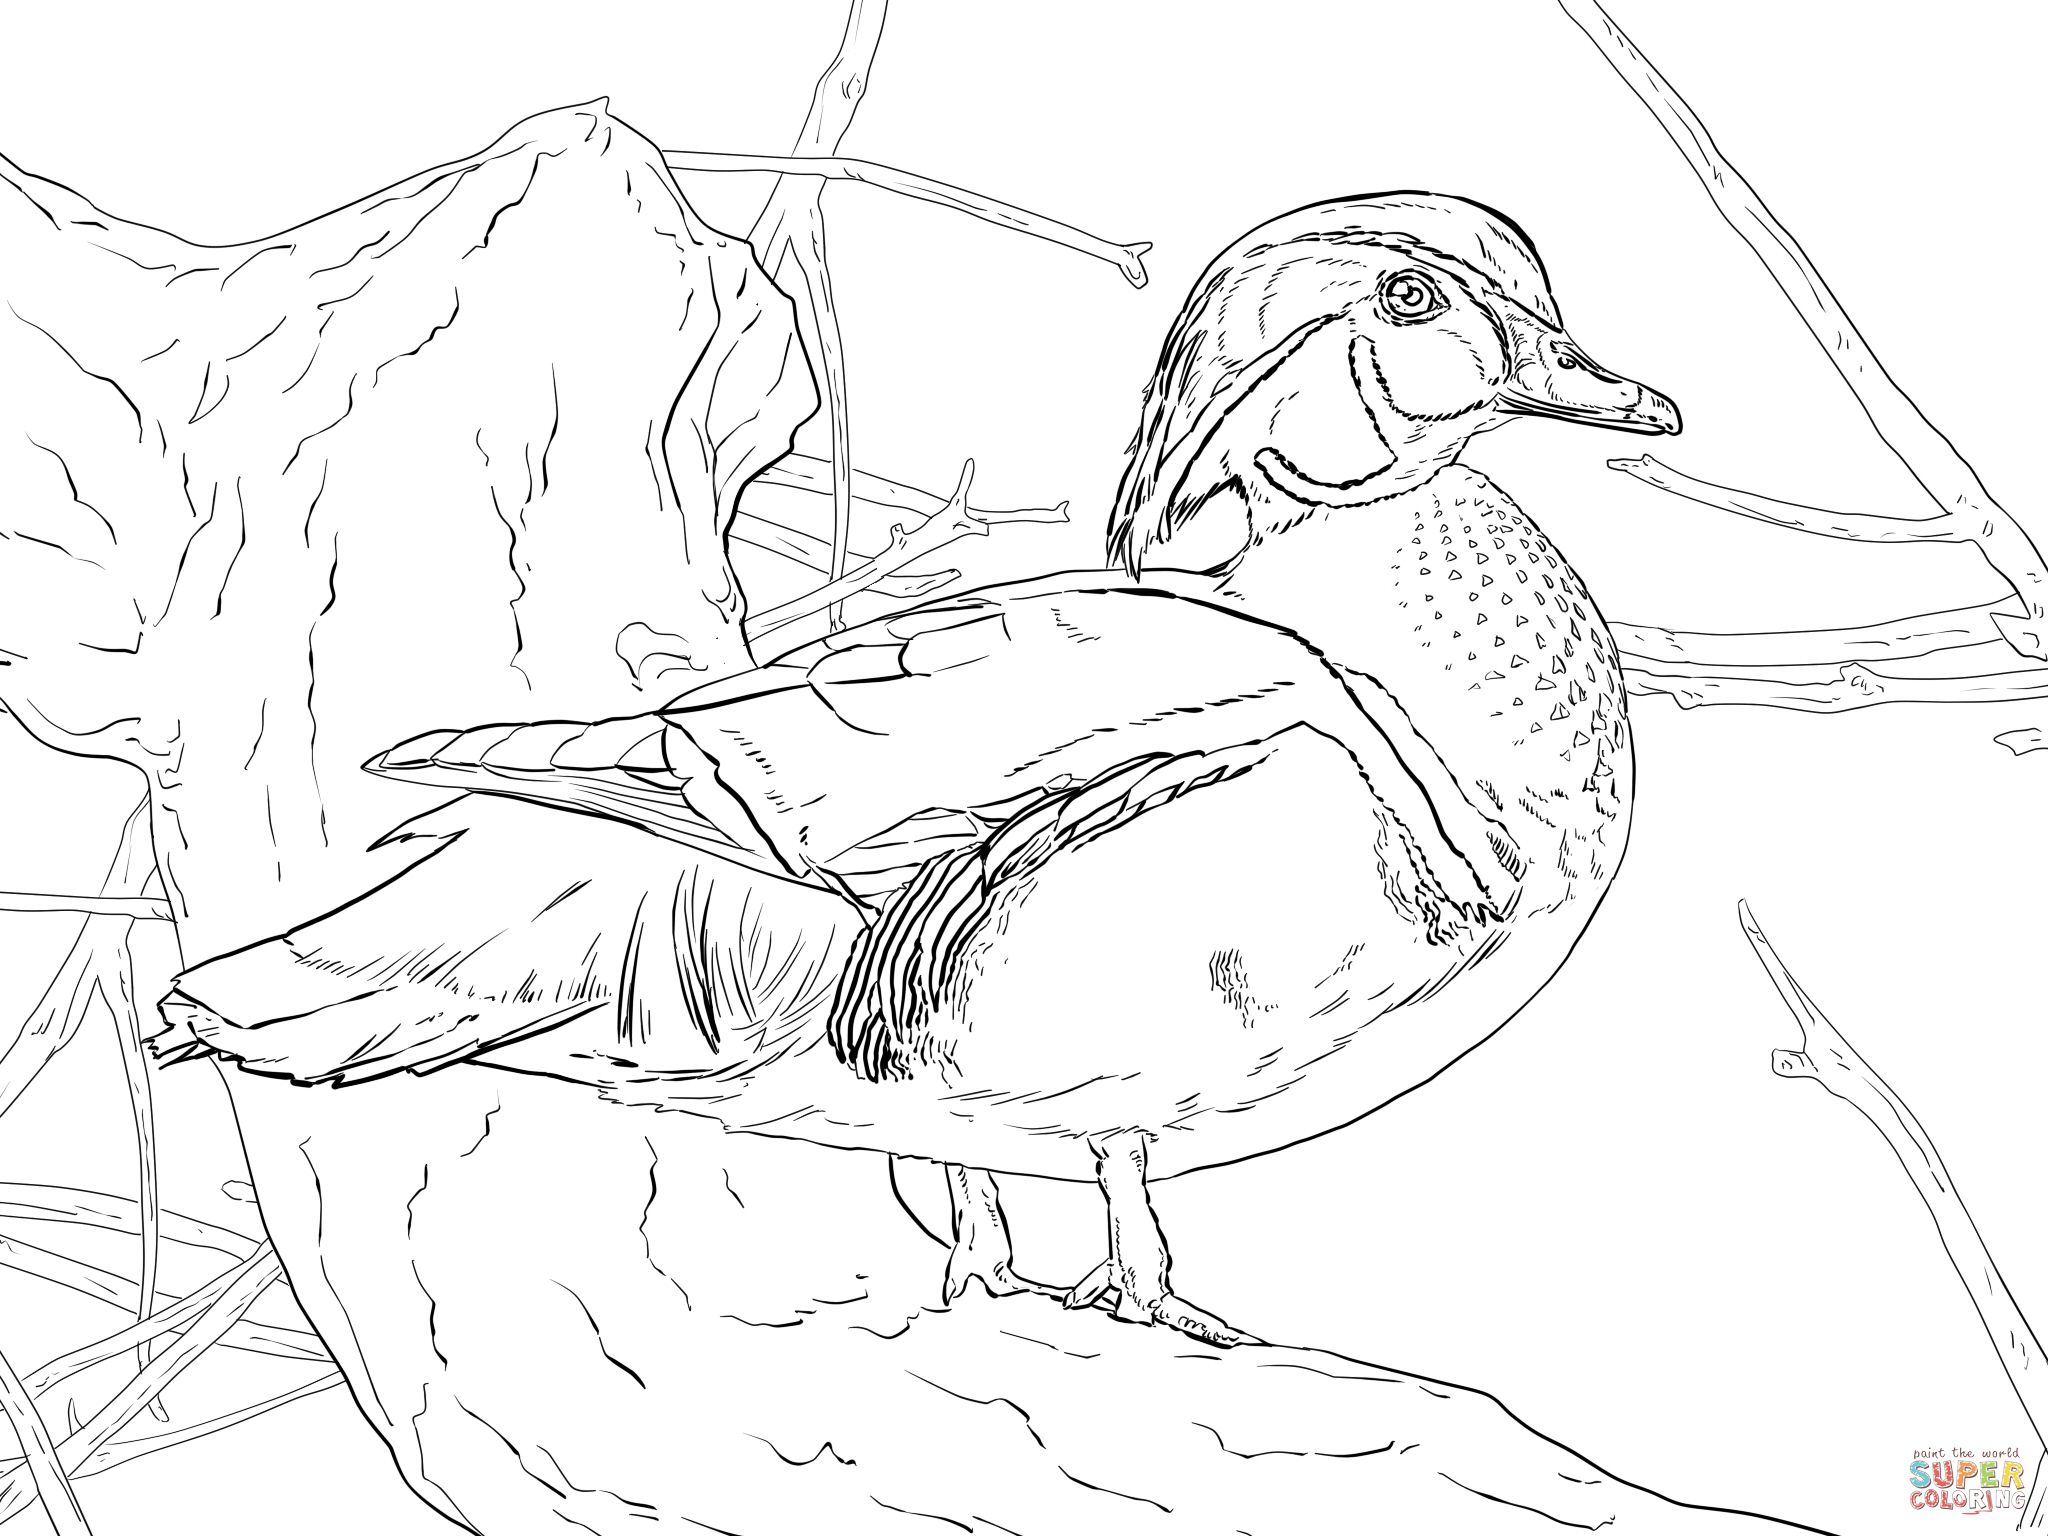 Wood Duck Drake Coloring Page Supercoloring Com Coloring Pages